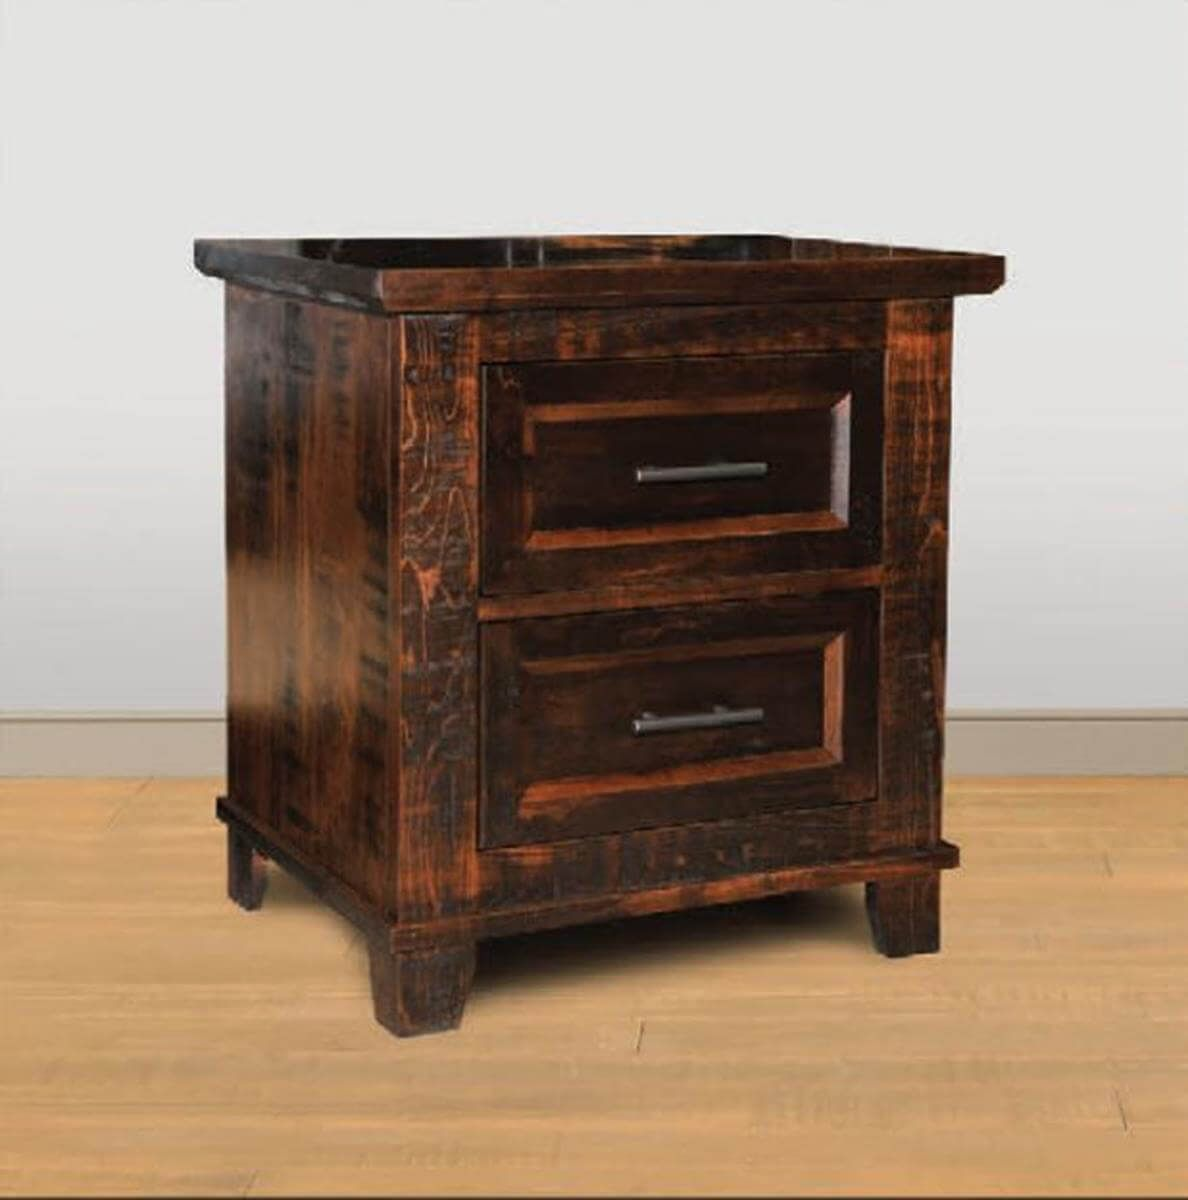 Two-Drawer Rustic Bedside Table